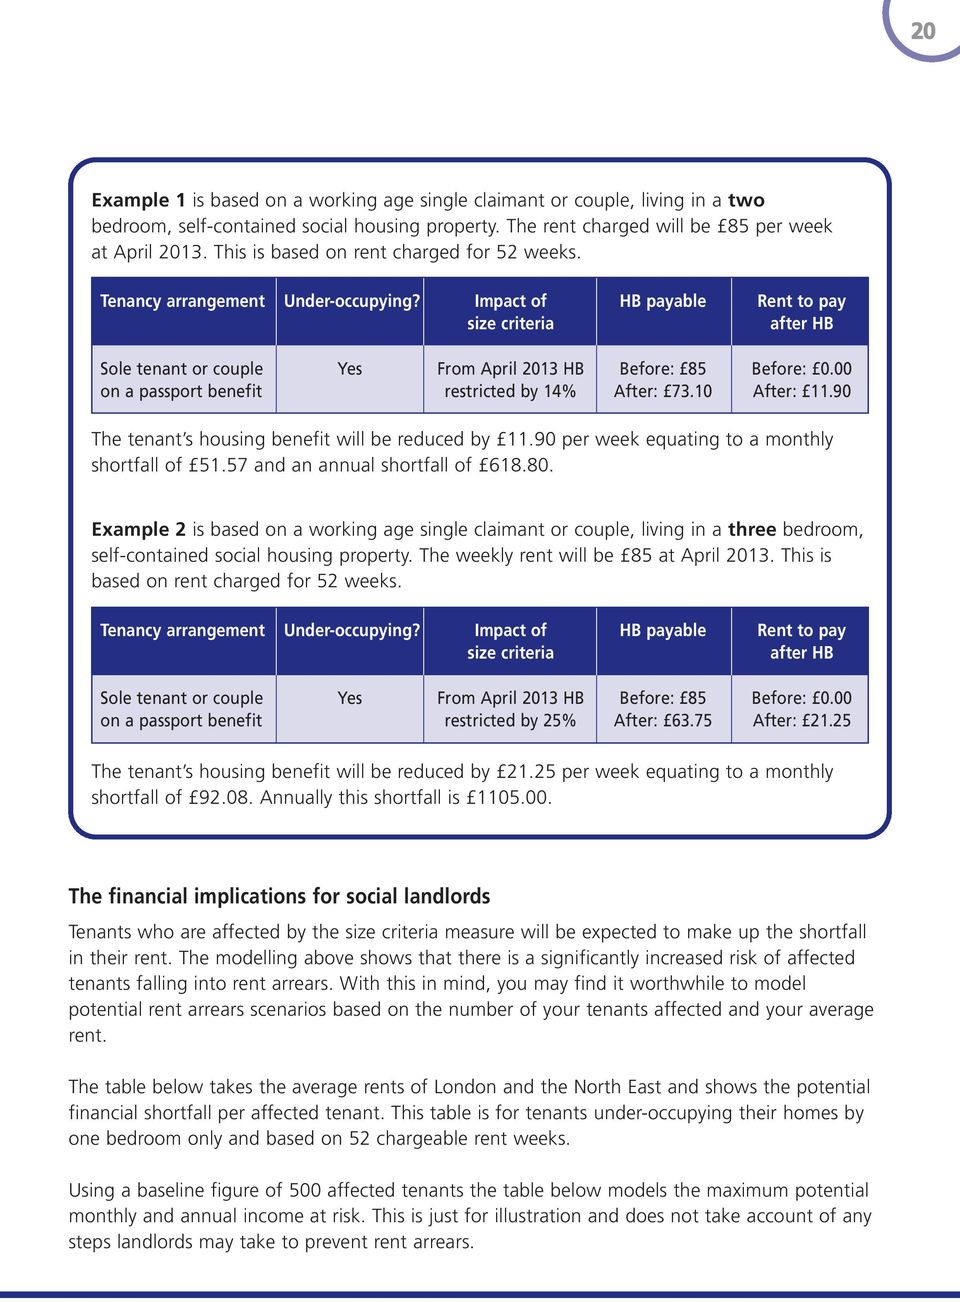 Impact of HB payable Rent to pay size criteria after HB Sole tenant or couple Yes From April 2013 HB Before: 85 Before: 0.00 on a passport benefit restricted by 14% After: 73.10 After: 11.